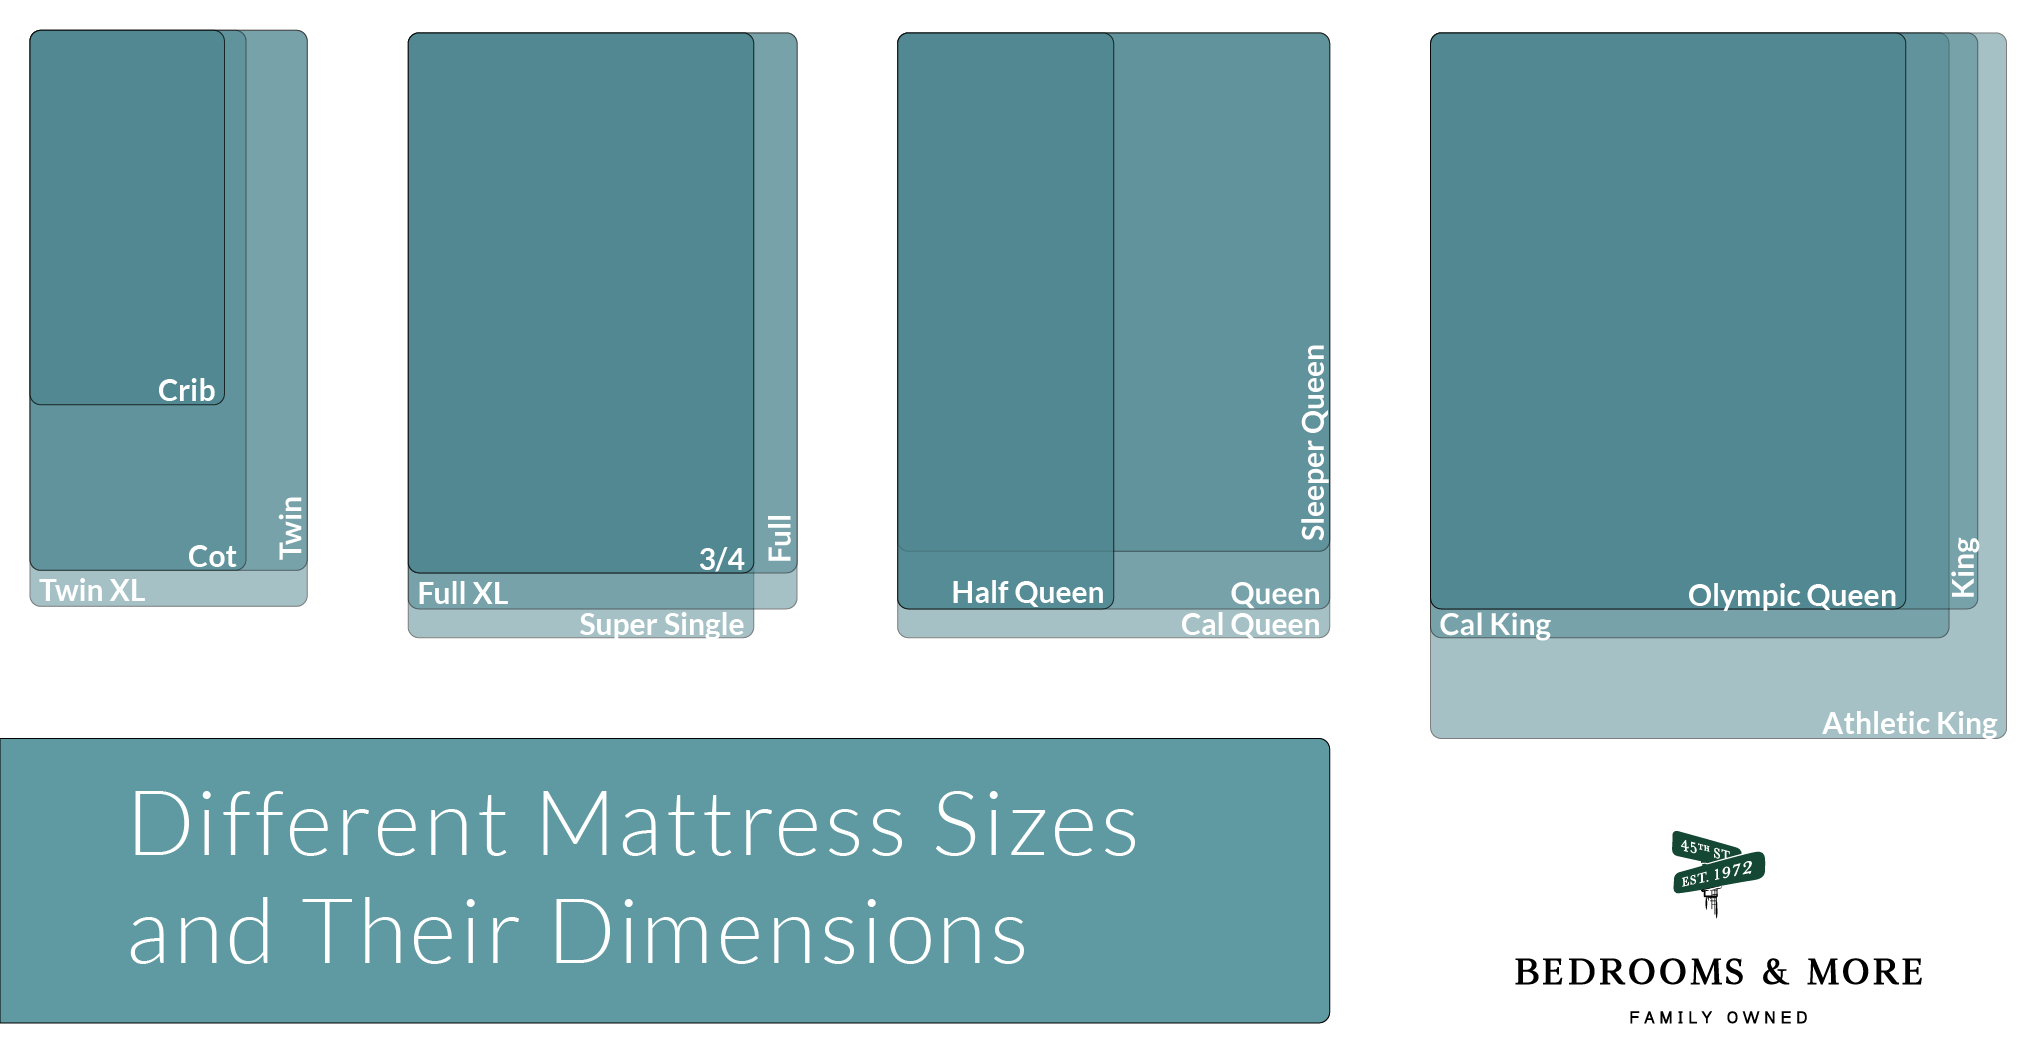 Different Mattress Sizes and Their Dimensions